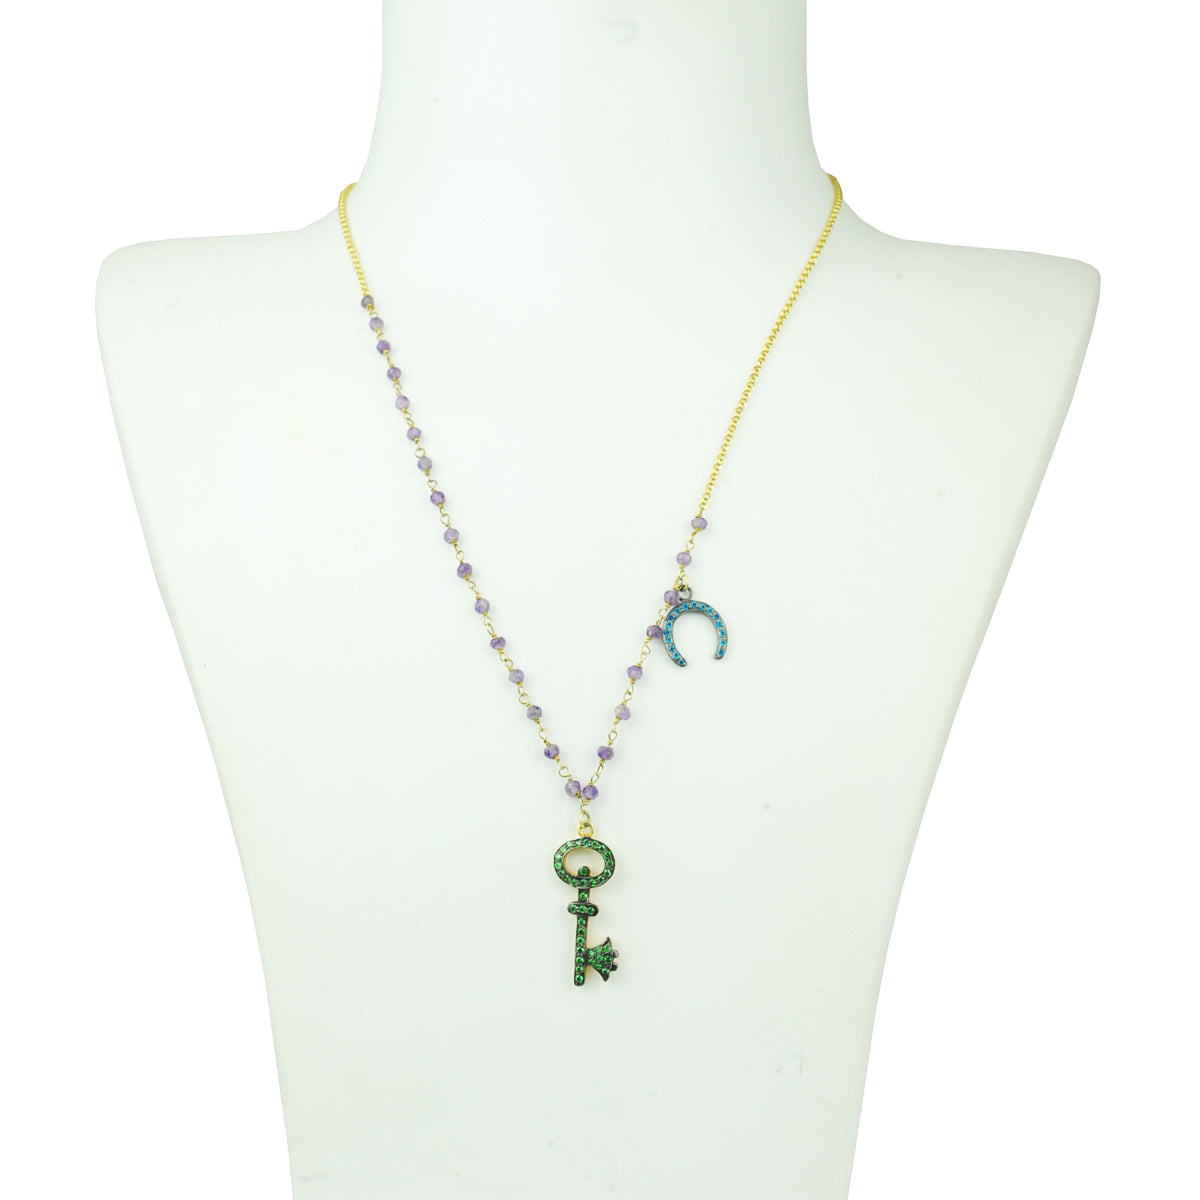 Eugenia Zirconia Elements and Amethyst Short Necklace